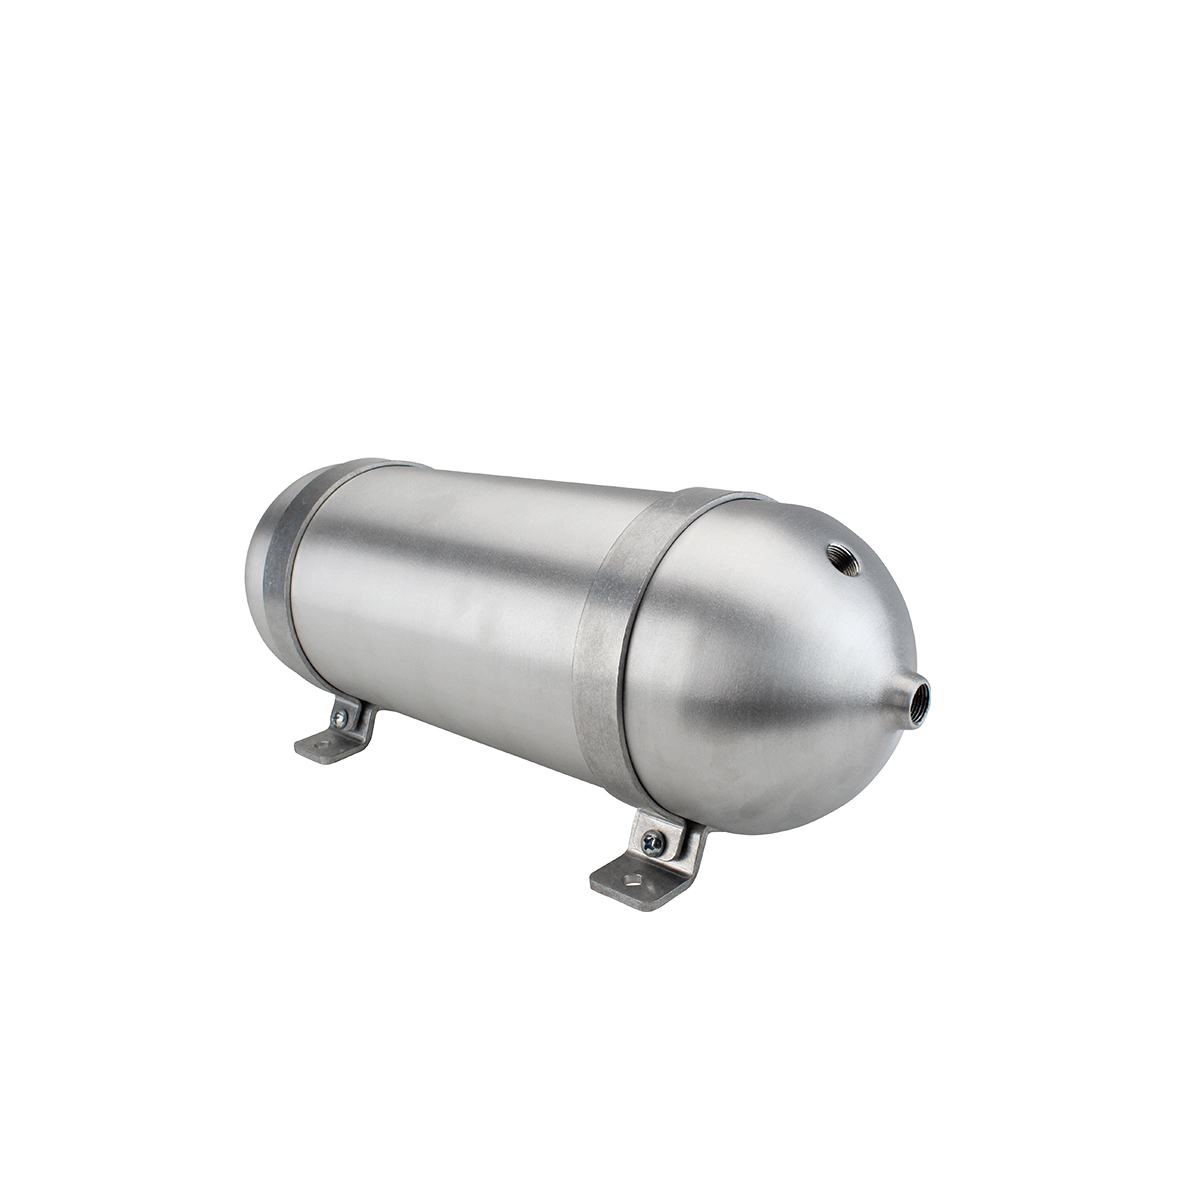 "SA518038-01 Seamless Tanks Aluminum Air Tank 18"" Length 5.562"" Diameter, (4) 3/8"" Ports (1) 1/4"" Port, 200psi Rated, Actual Volume 1.47 Gallons"